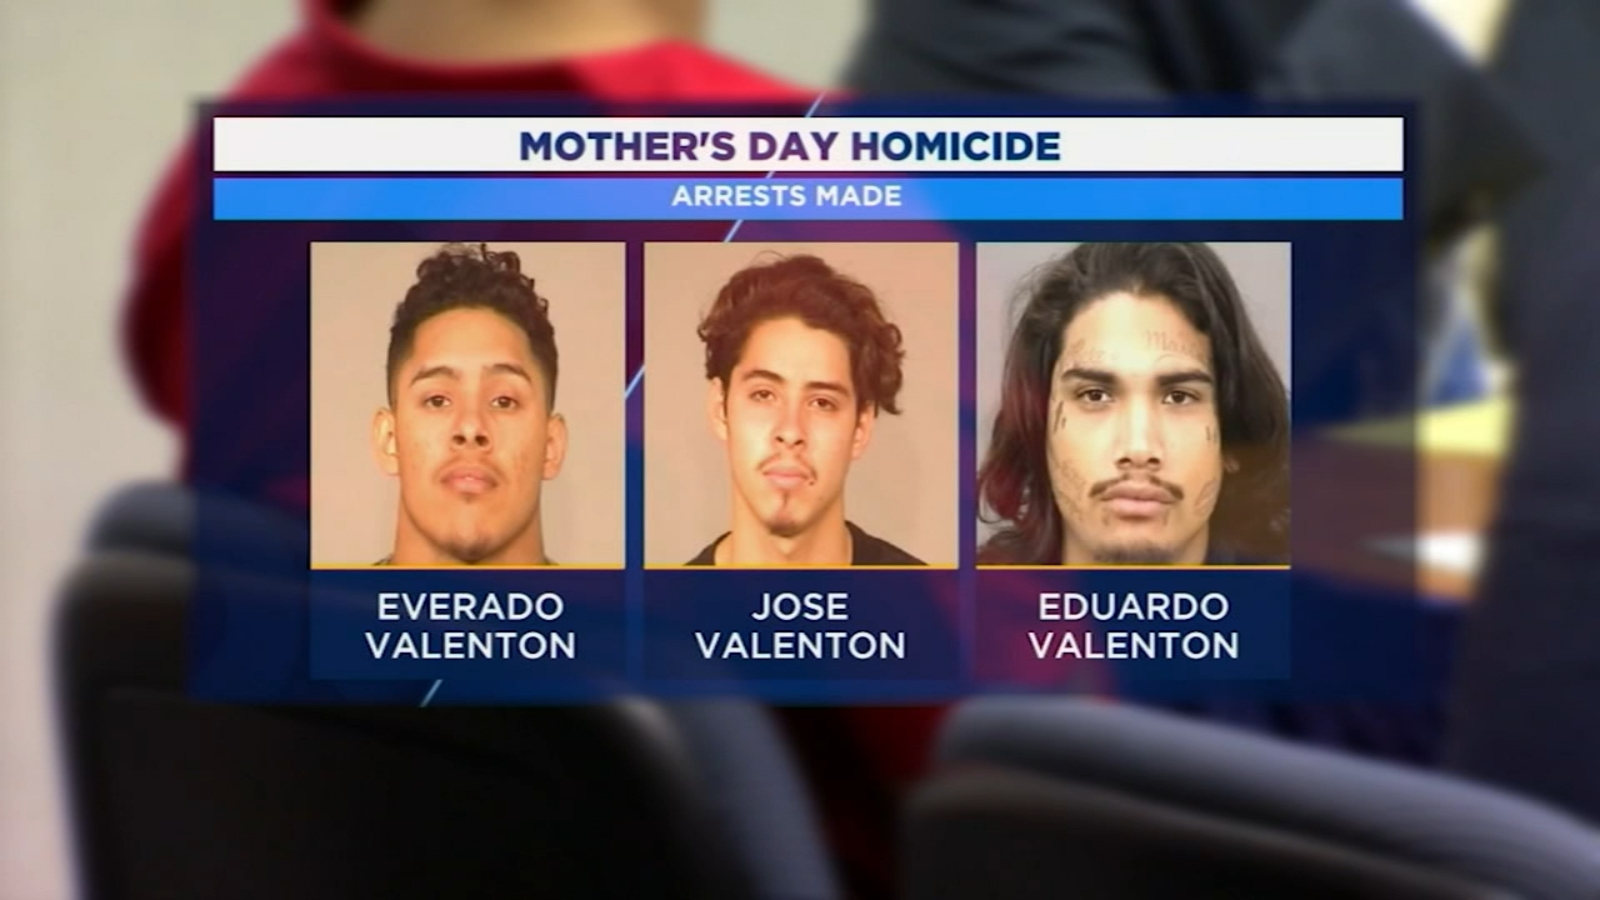 Andrea Garcia Videos romantic feud leads to mother's day murder, but who fired first?